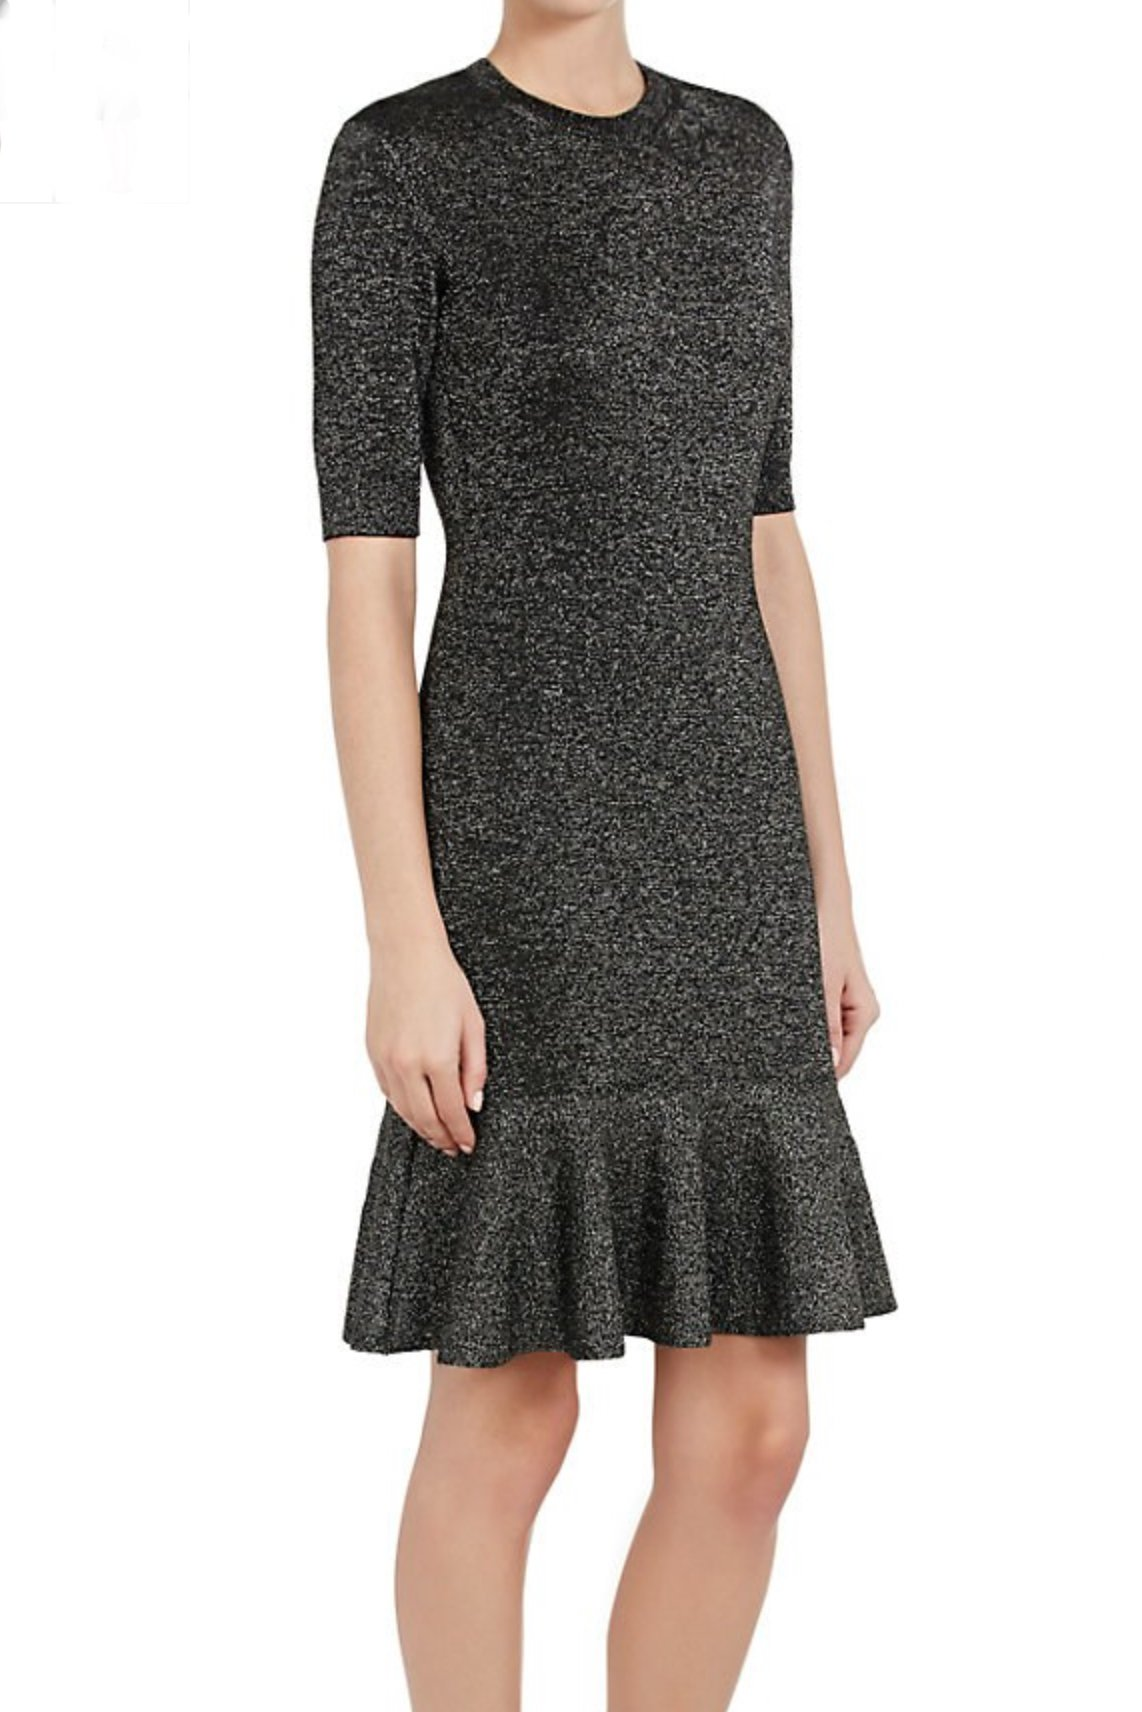 Metallic Knit Half-Sleeve Dress - The Bobby Boga